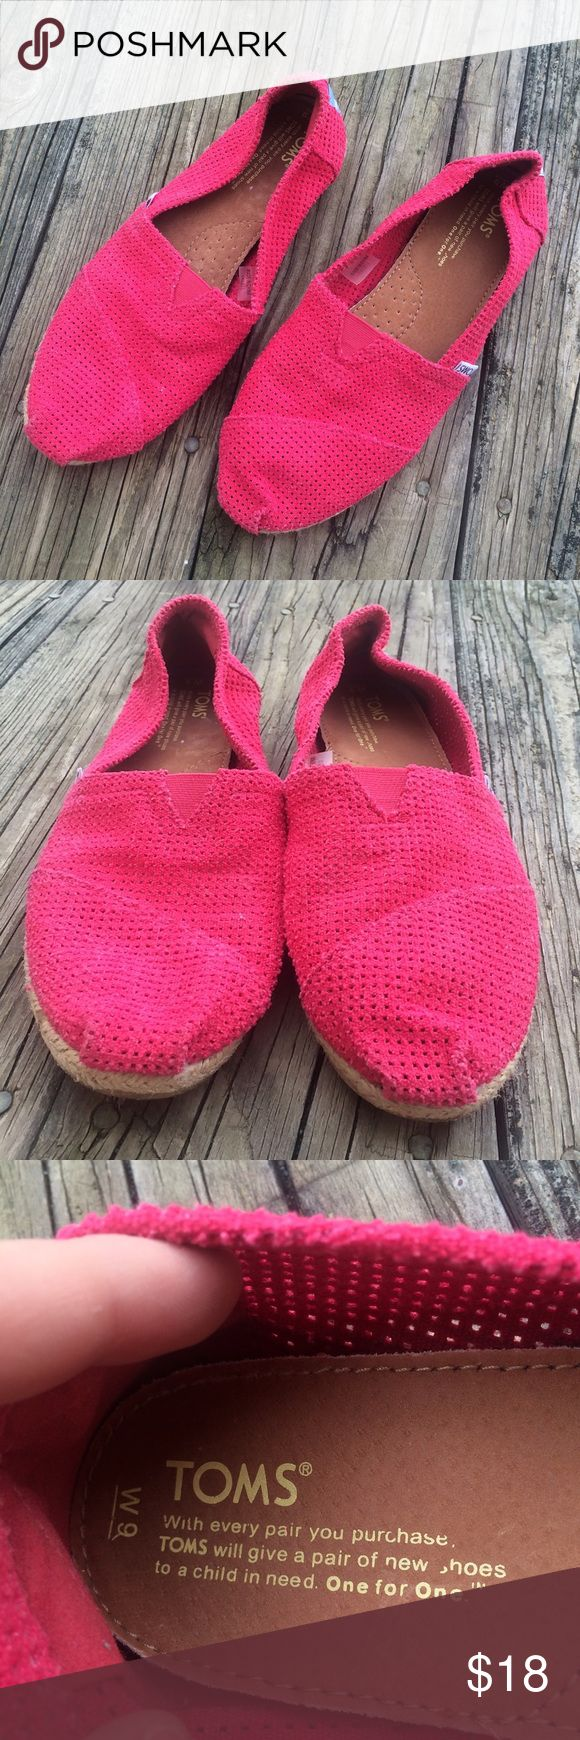 Pink TOMS Size 9 Cute pair of Toms flats, size 9. Hot pink color. Been worn but are in good condition! TOMS Shoes Flats & Loafers